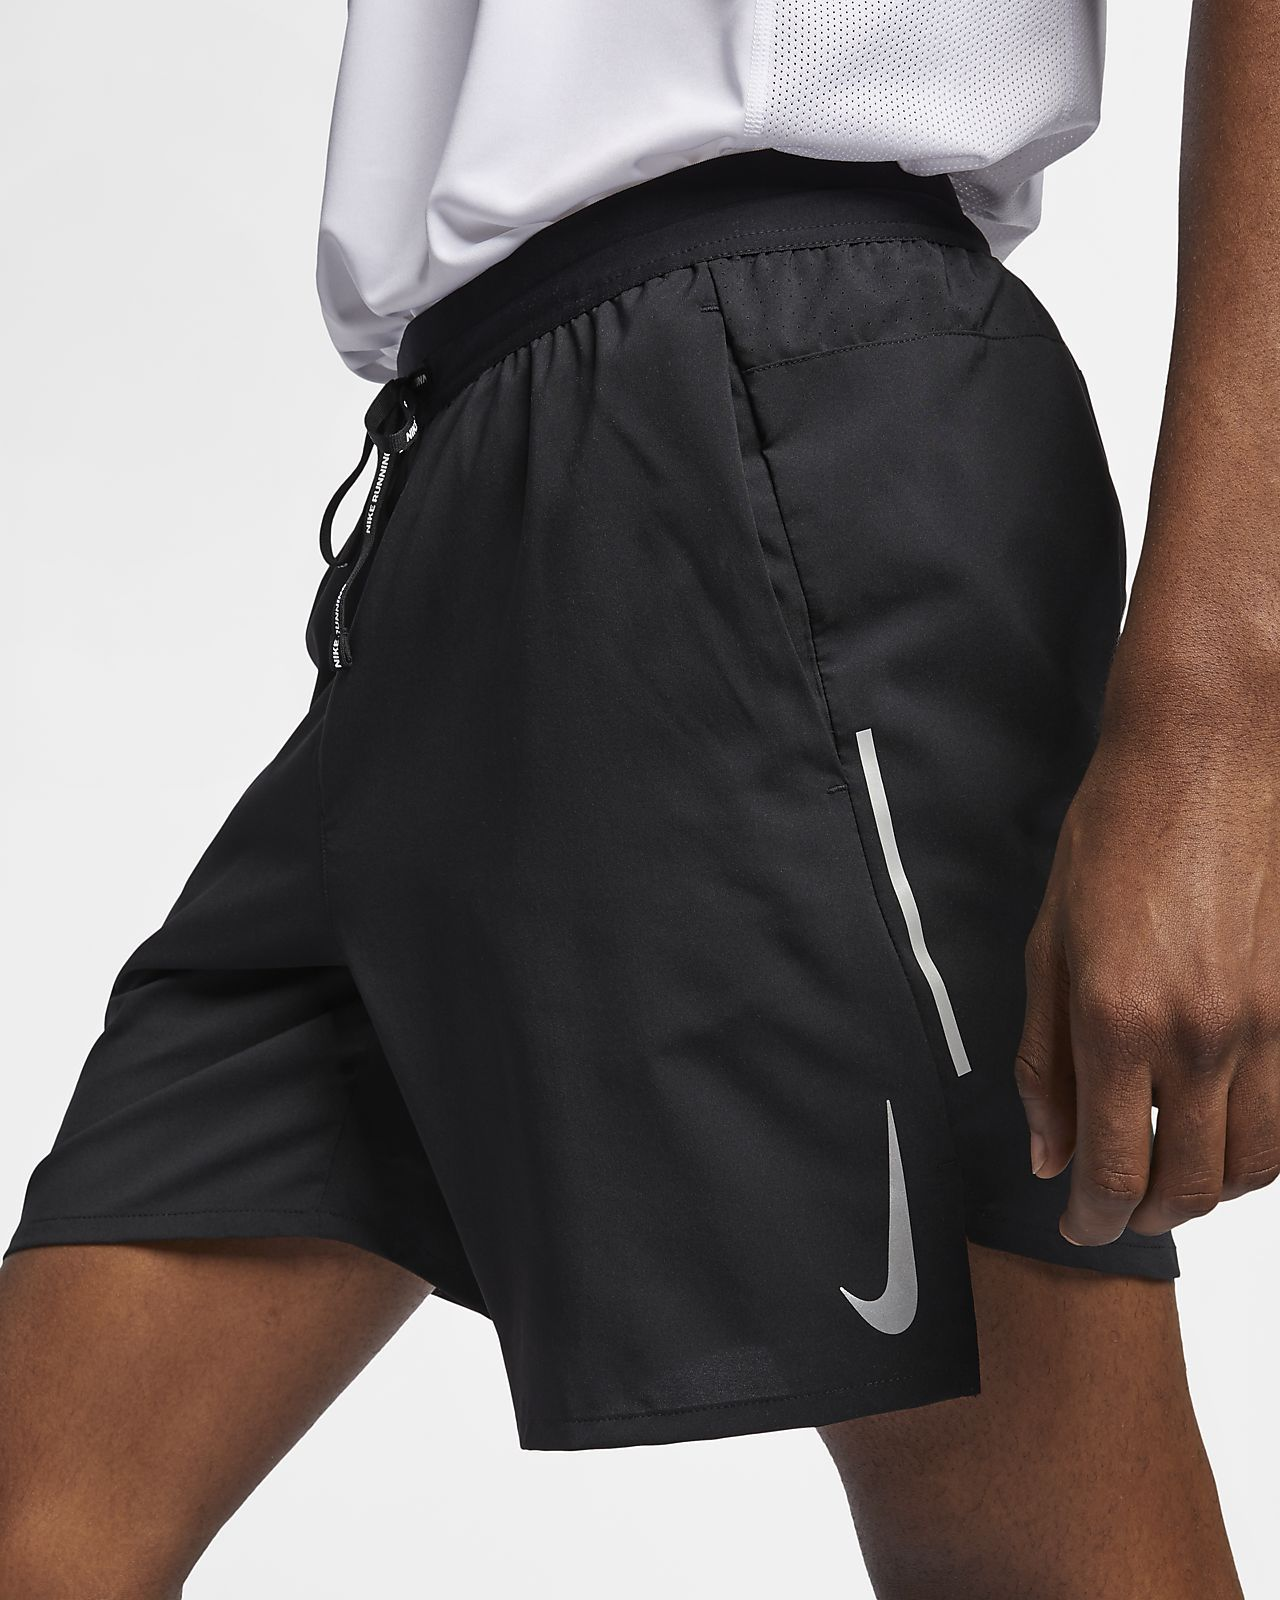 8a56350e4e9d3 Nike Men's 7 Running Shorts Flex Stride in 2019 | 28 | Nike running ...